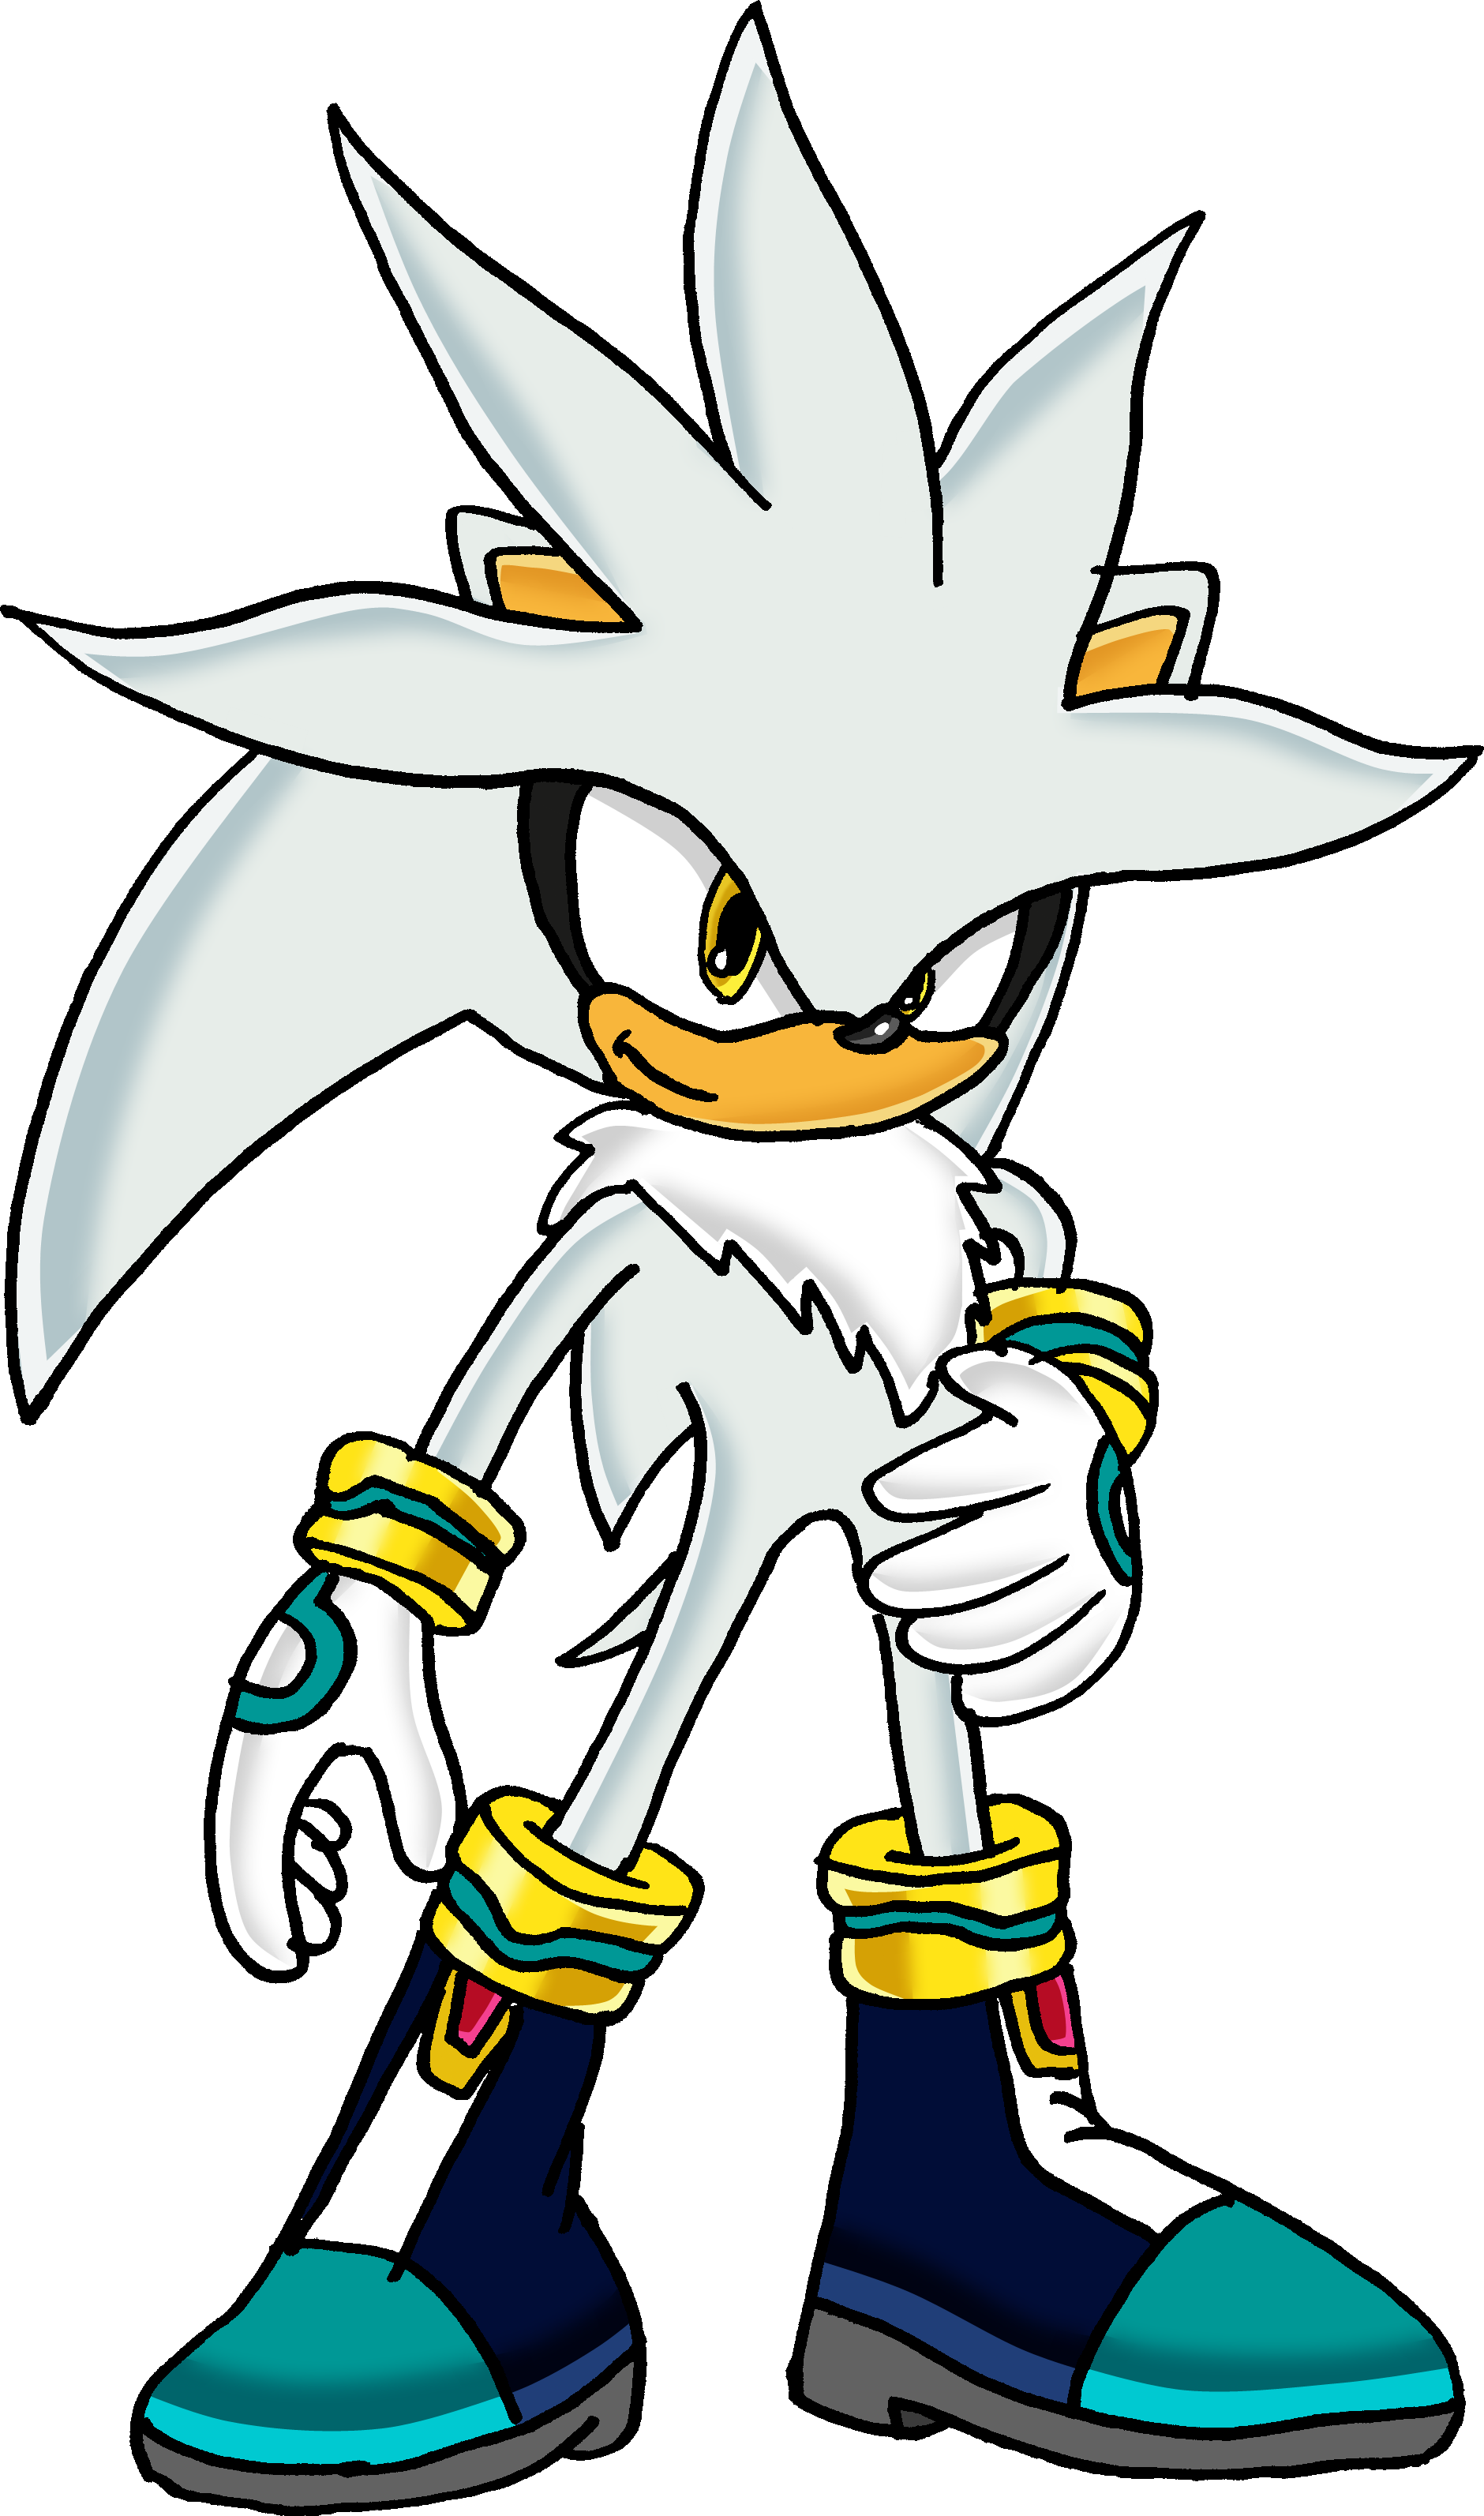 Home | silver the hedgehog Gallery | Also Try: